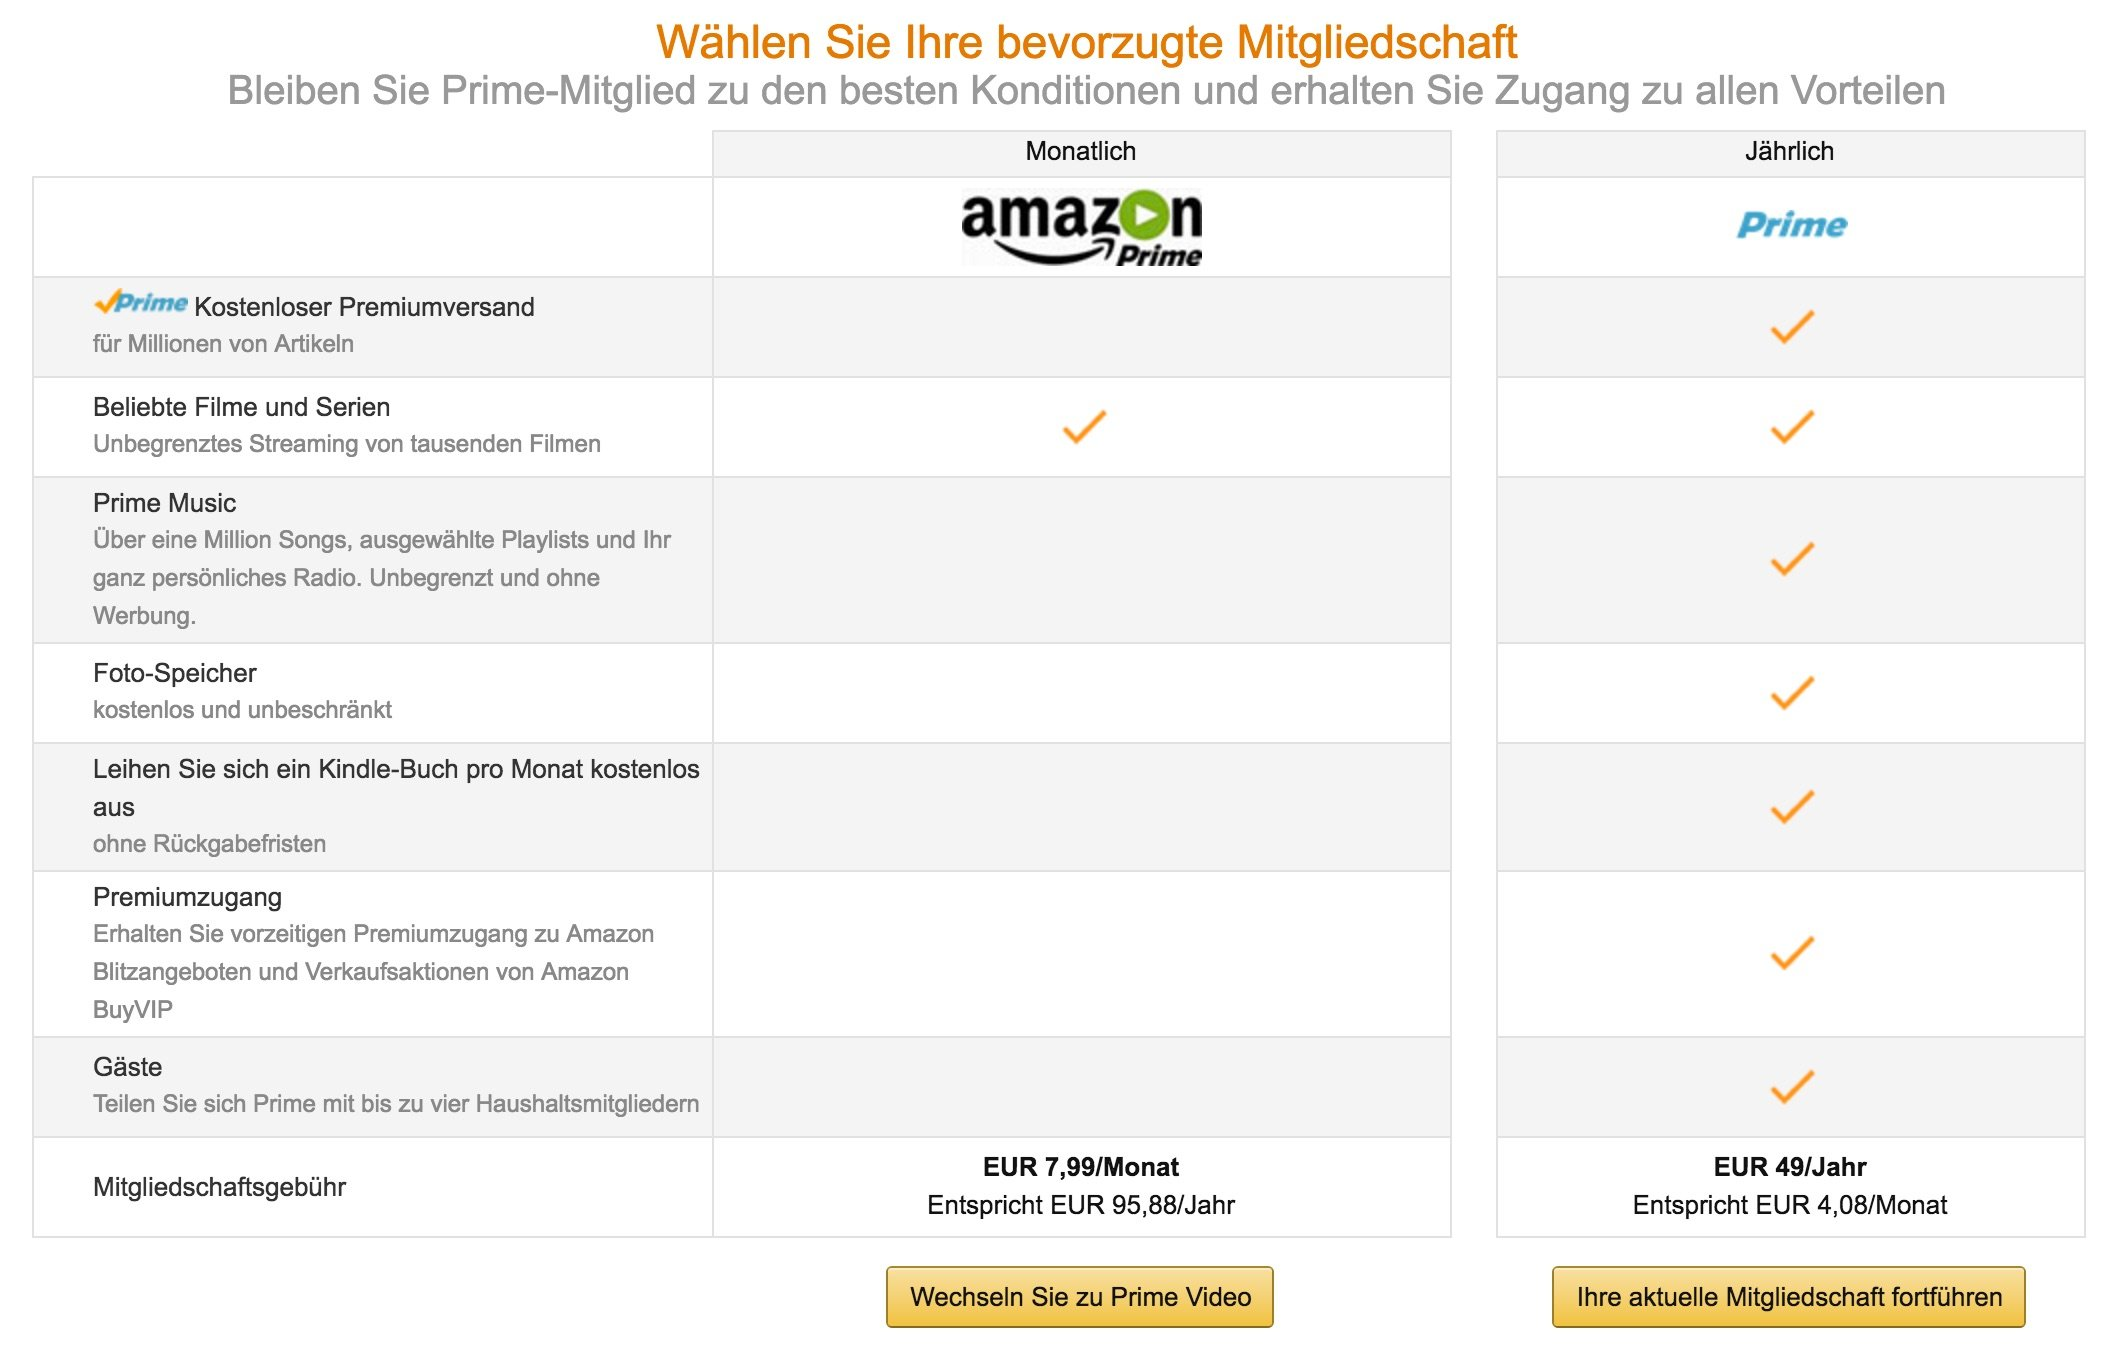 amazon prime bald 99 euro pro jahr